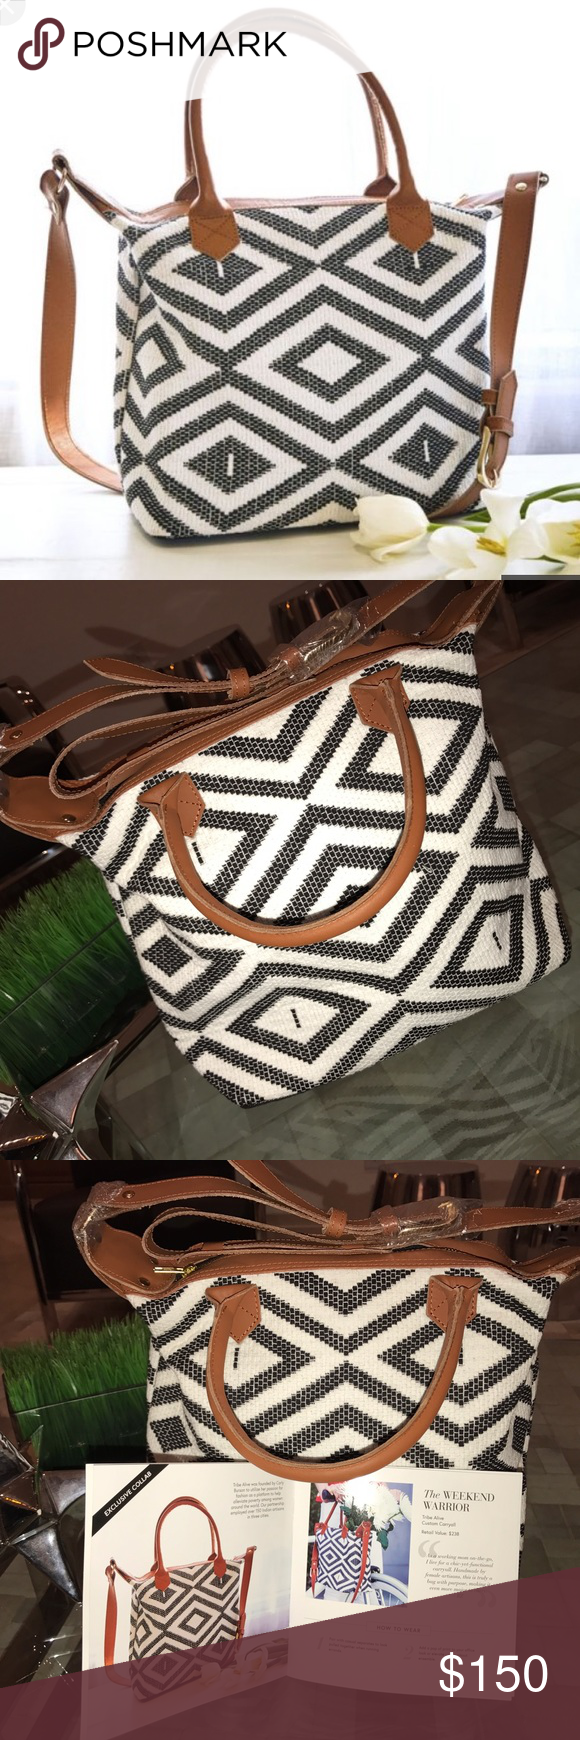 NEW! Tribe Alive custom carryall bag! NEW! Tribe Alive custom carryall bag! As seen in Rachael Zoe style box! Completely new! Never before used! Will not find better deal than this! Tribe Alive Bags